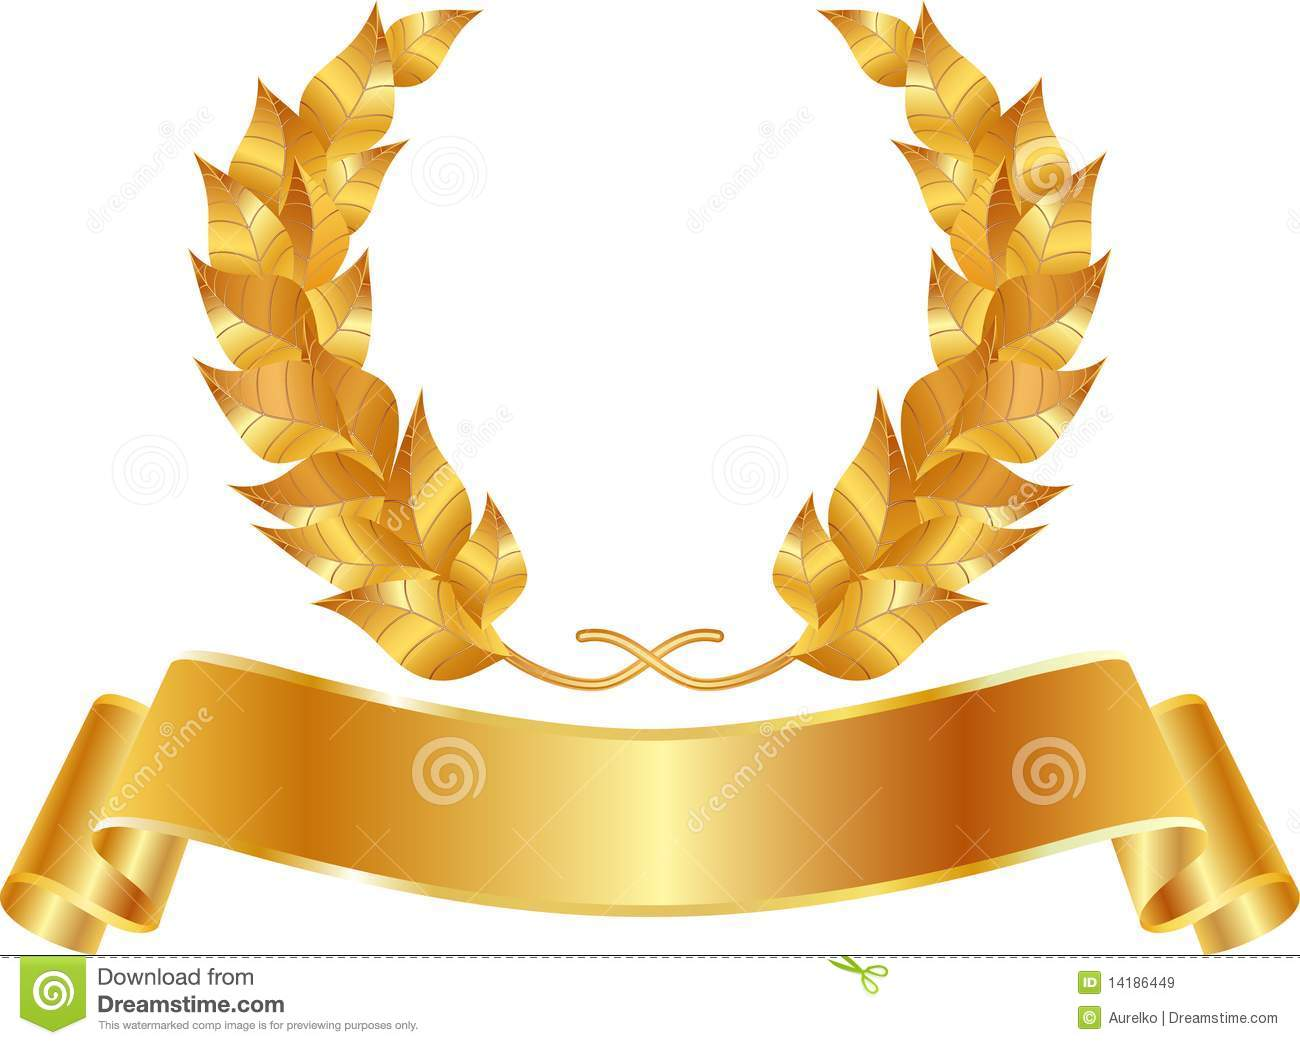 Golden Wreath Royalty Free Stock Images Image 14186449